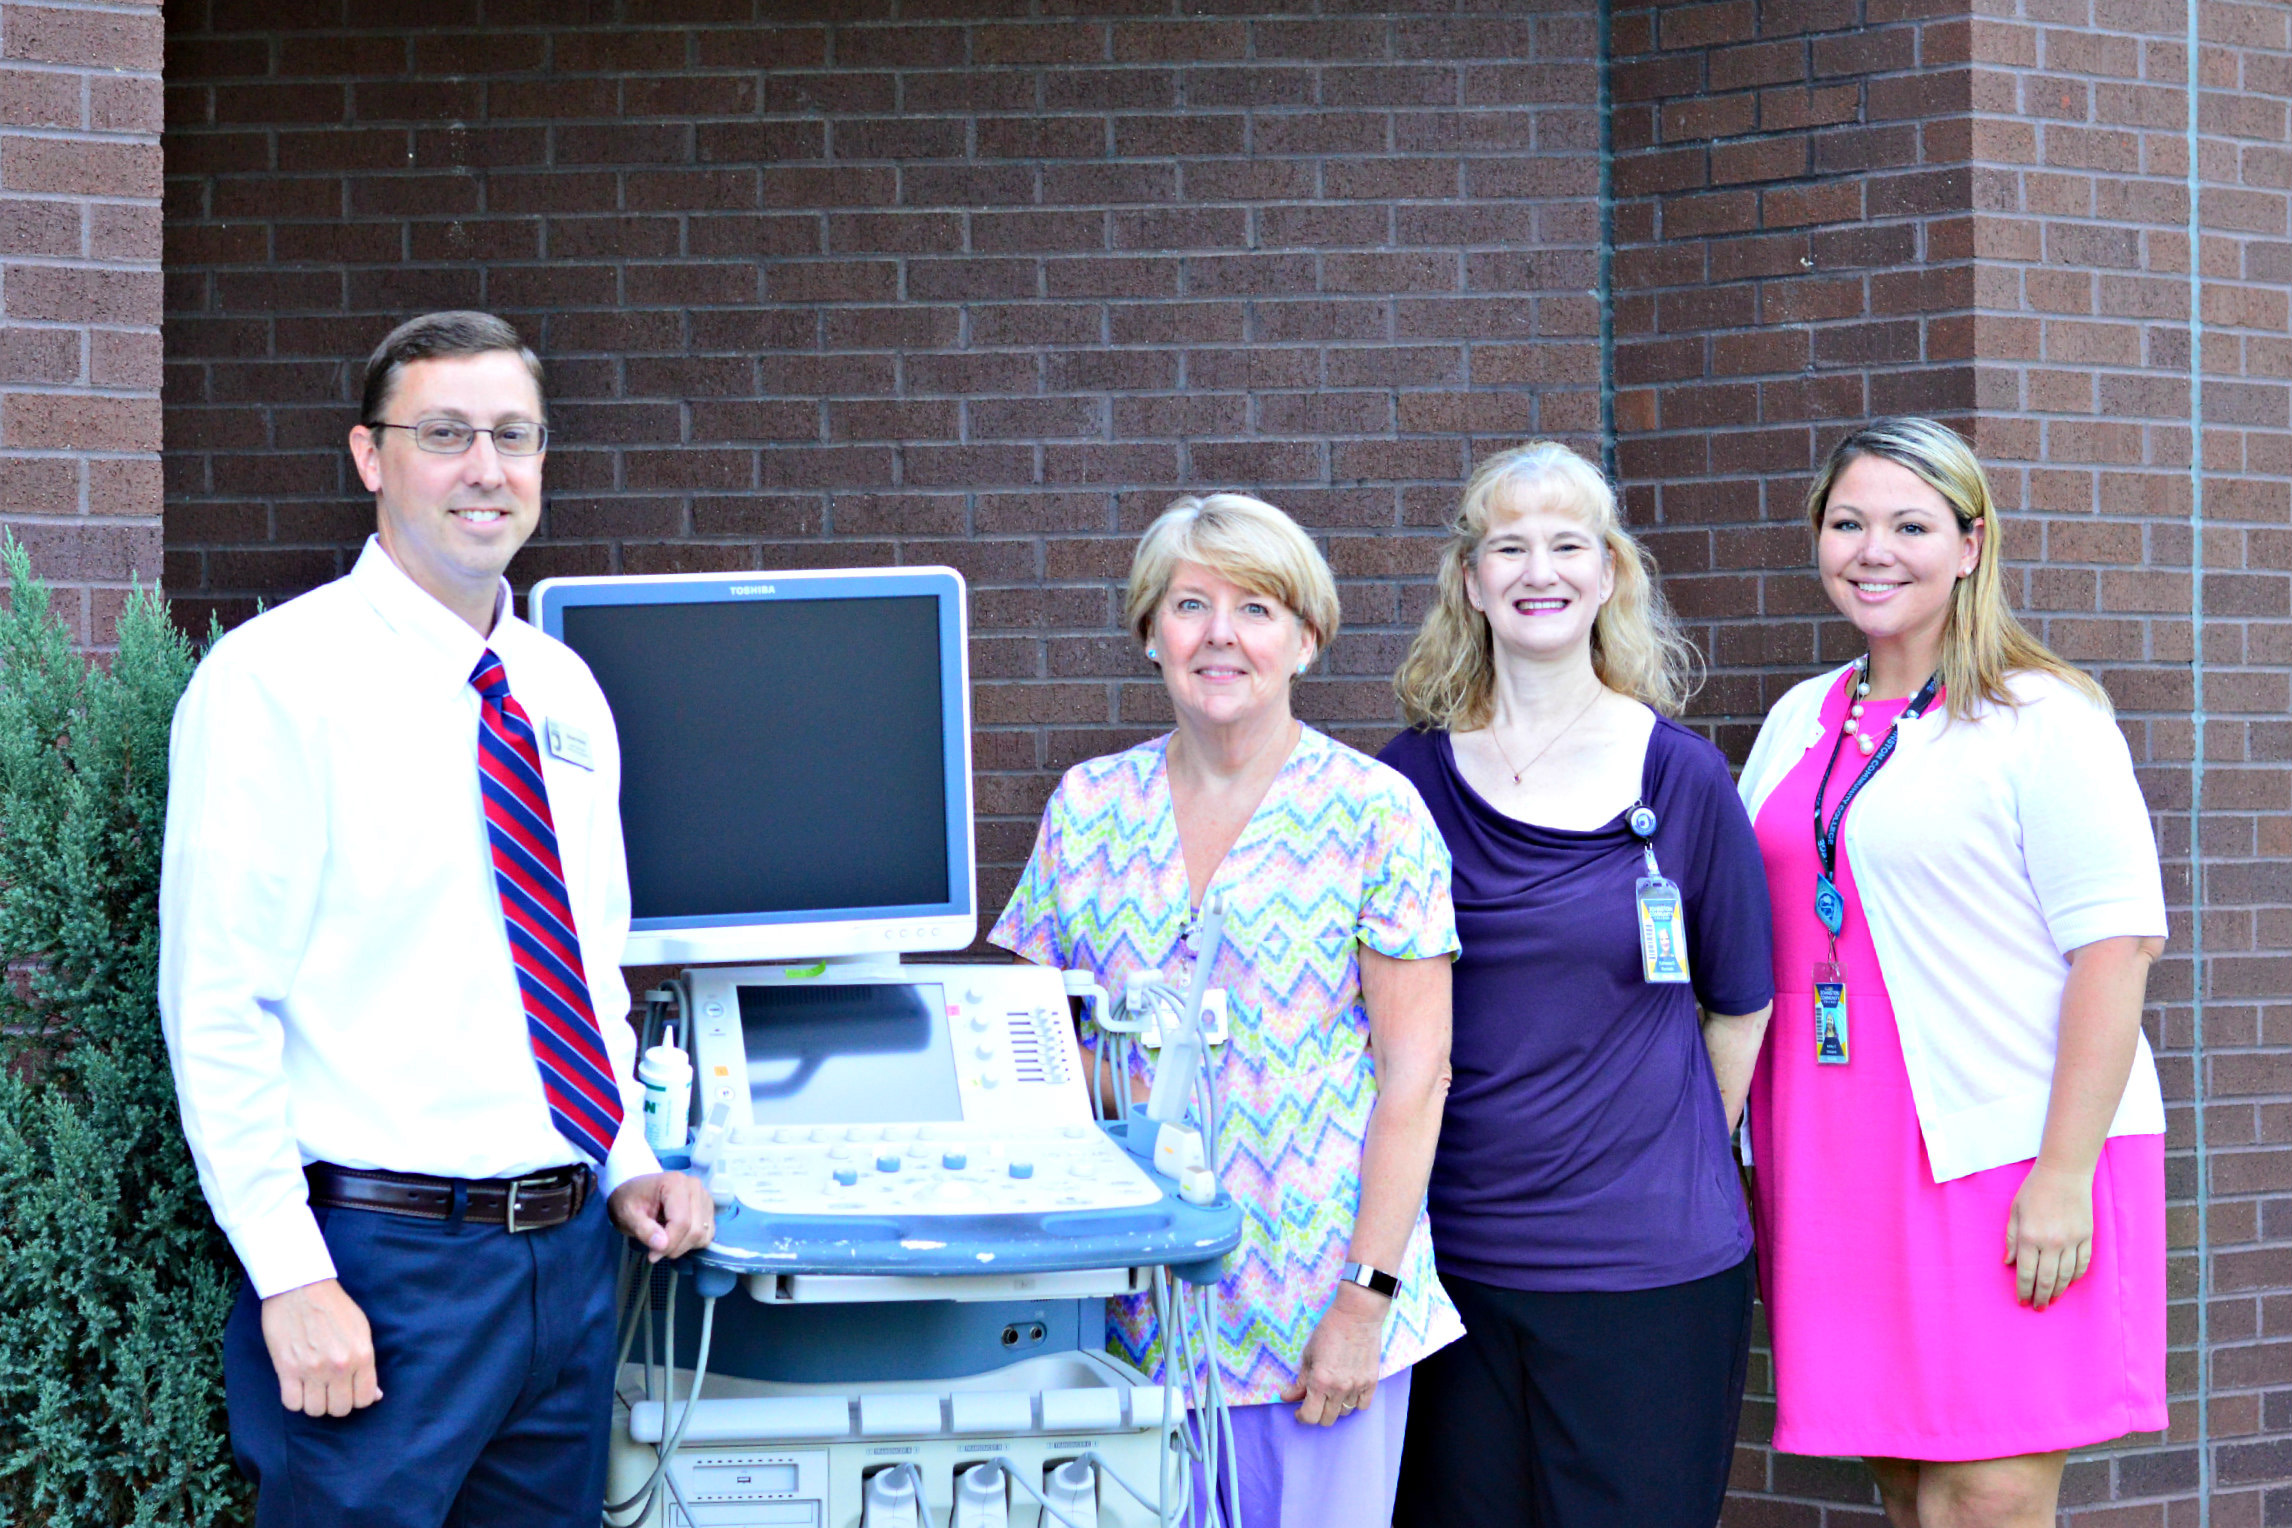 Wake Internal Medicine in Raleigh donated an ultrasound machine to JCC valued at approximately $10,000.